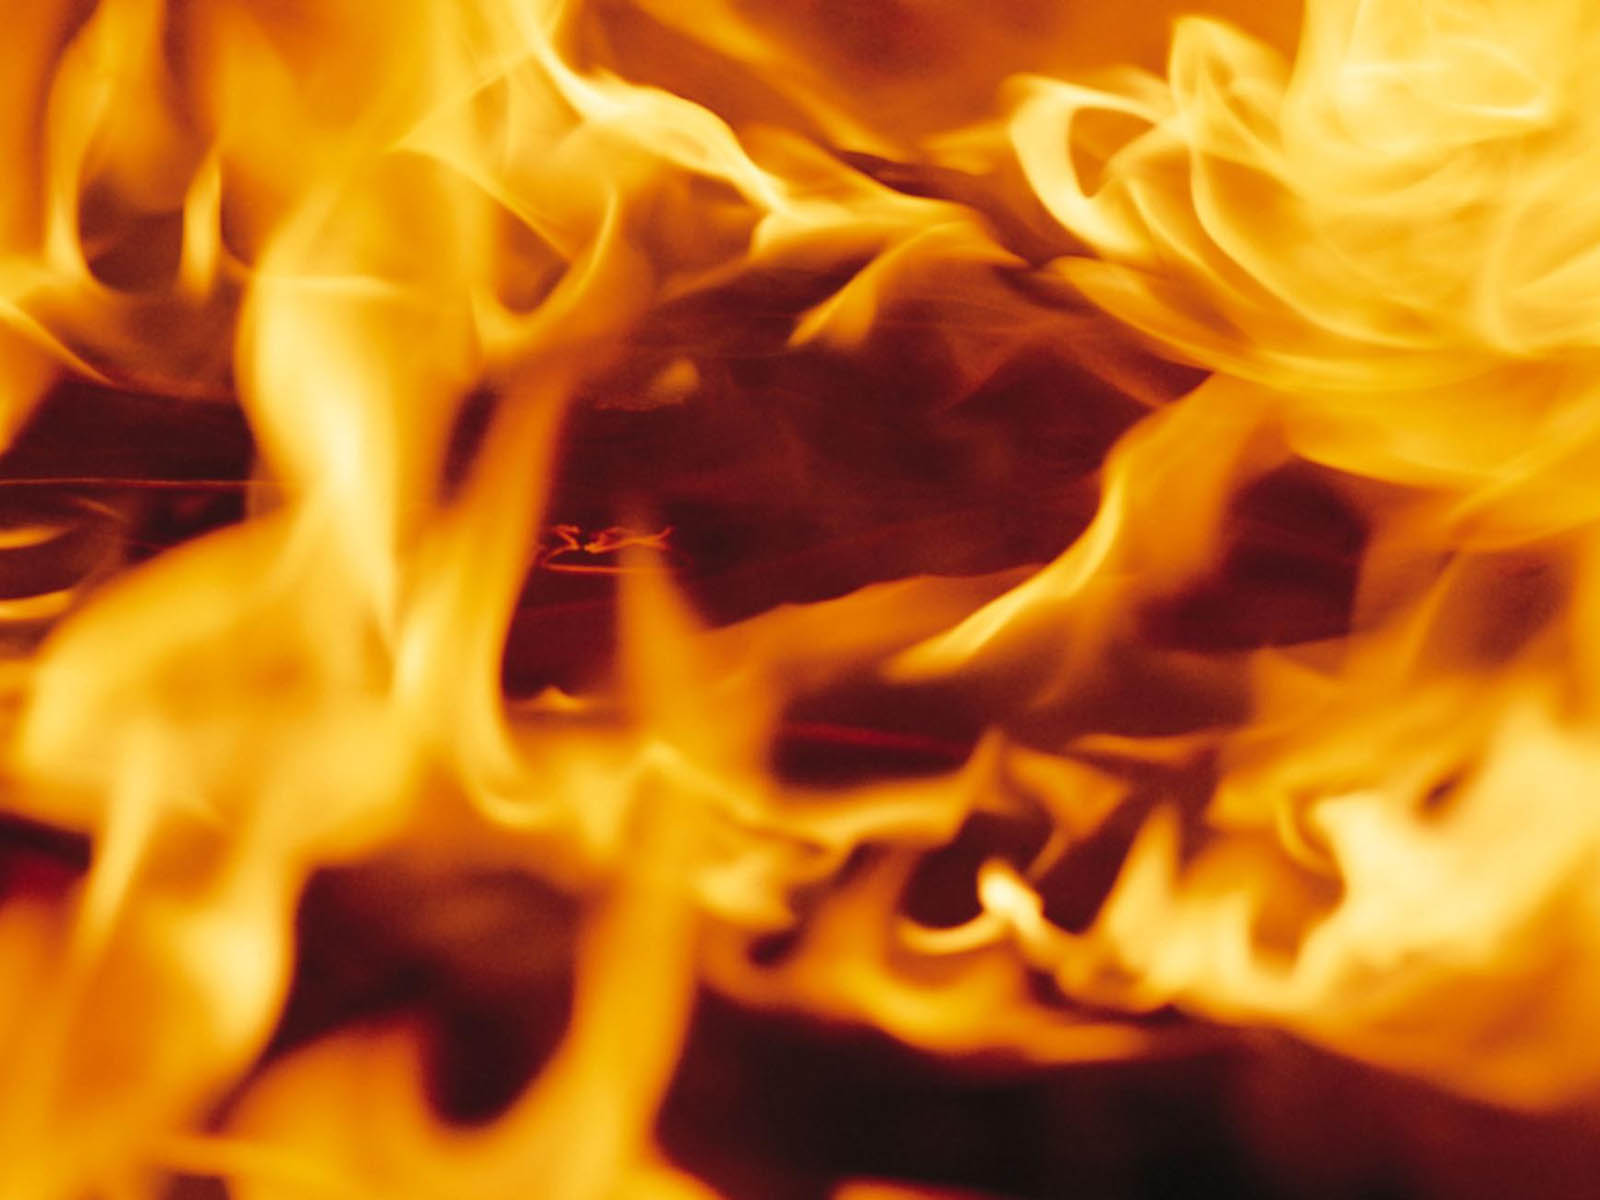 wallpapers: Fire Flames